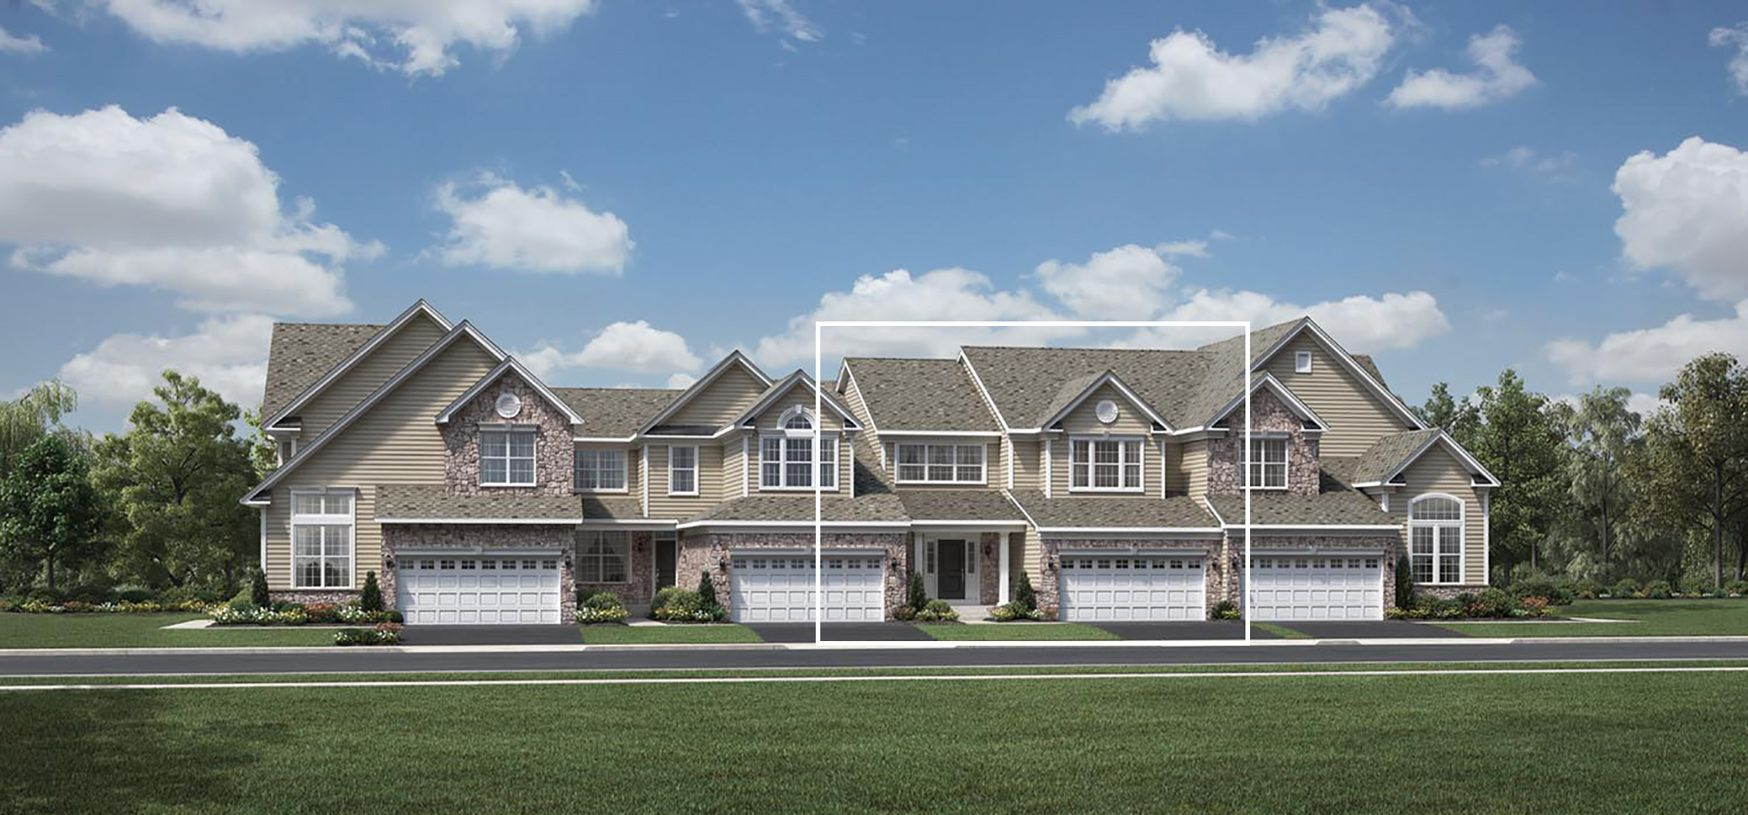 . New Construction Homes   Plans in West Chester  PA   1 806 Homes